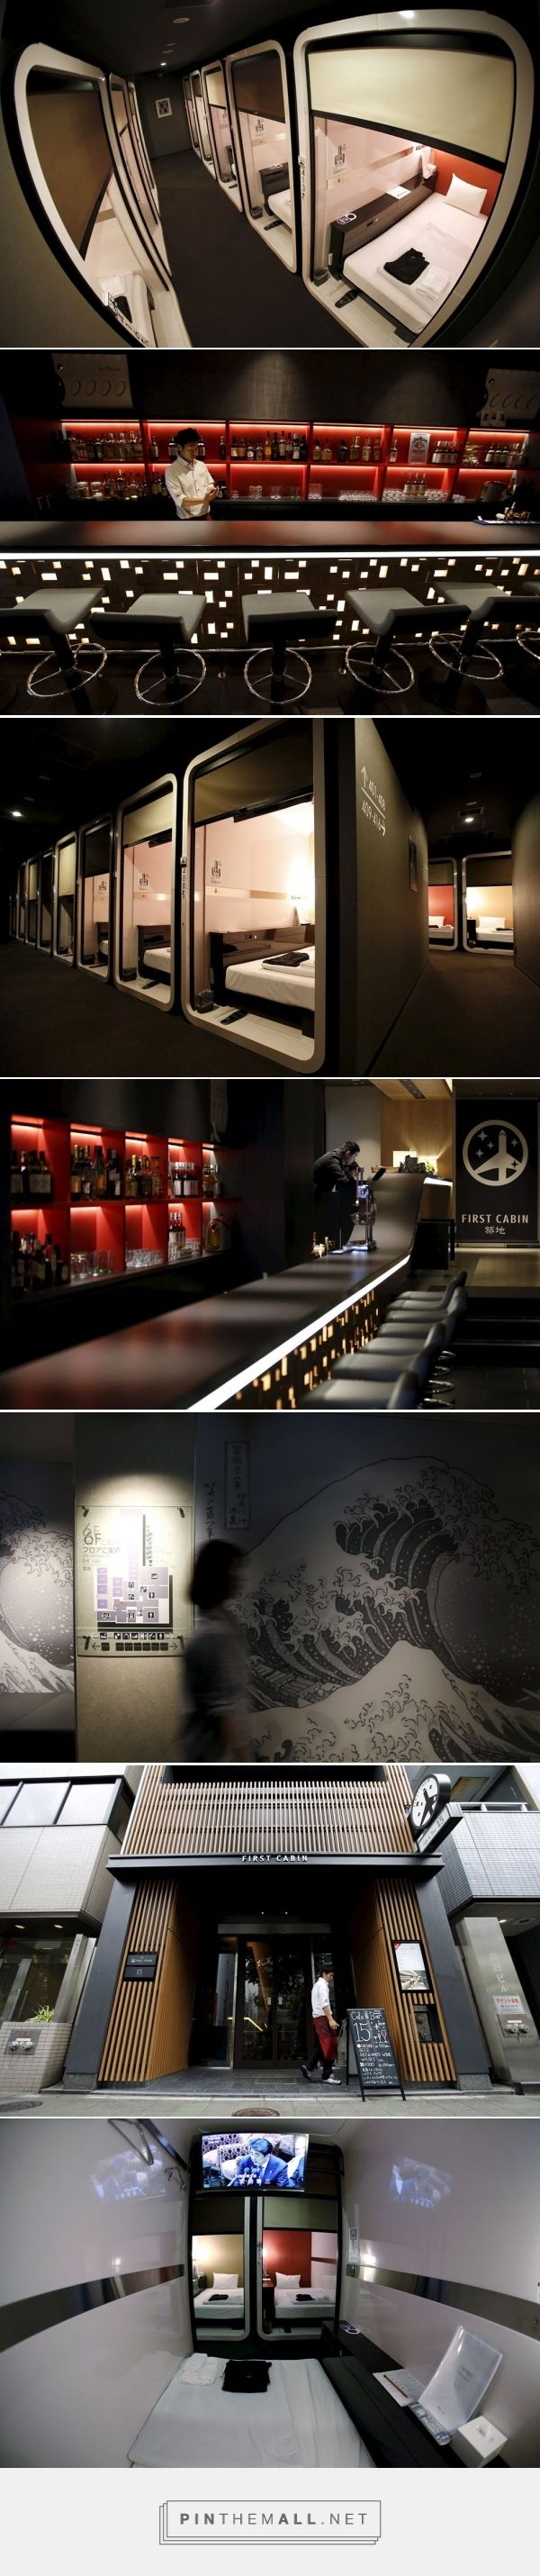 First Cabin Hotel – A Business-Class Capsule Hotel Located In Tokyo Read more at http://designyoutrust.com/2015/07/first-cabin-hotel-a-business-class-capsule-hotel-located-in-tokyo/#ef0f0VbIs42Yjujx.99